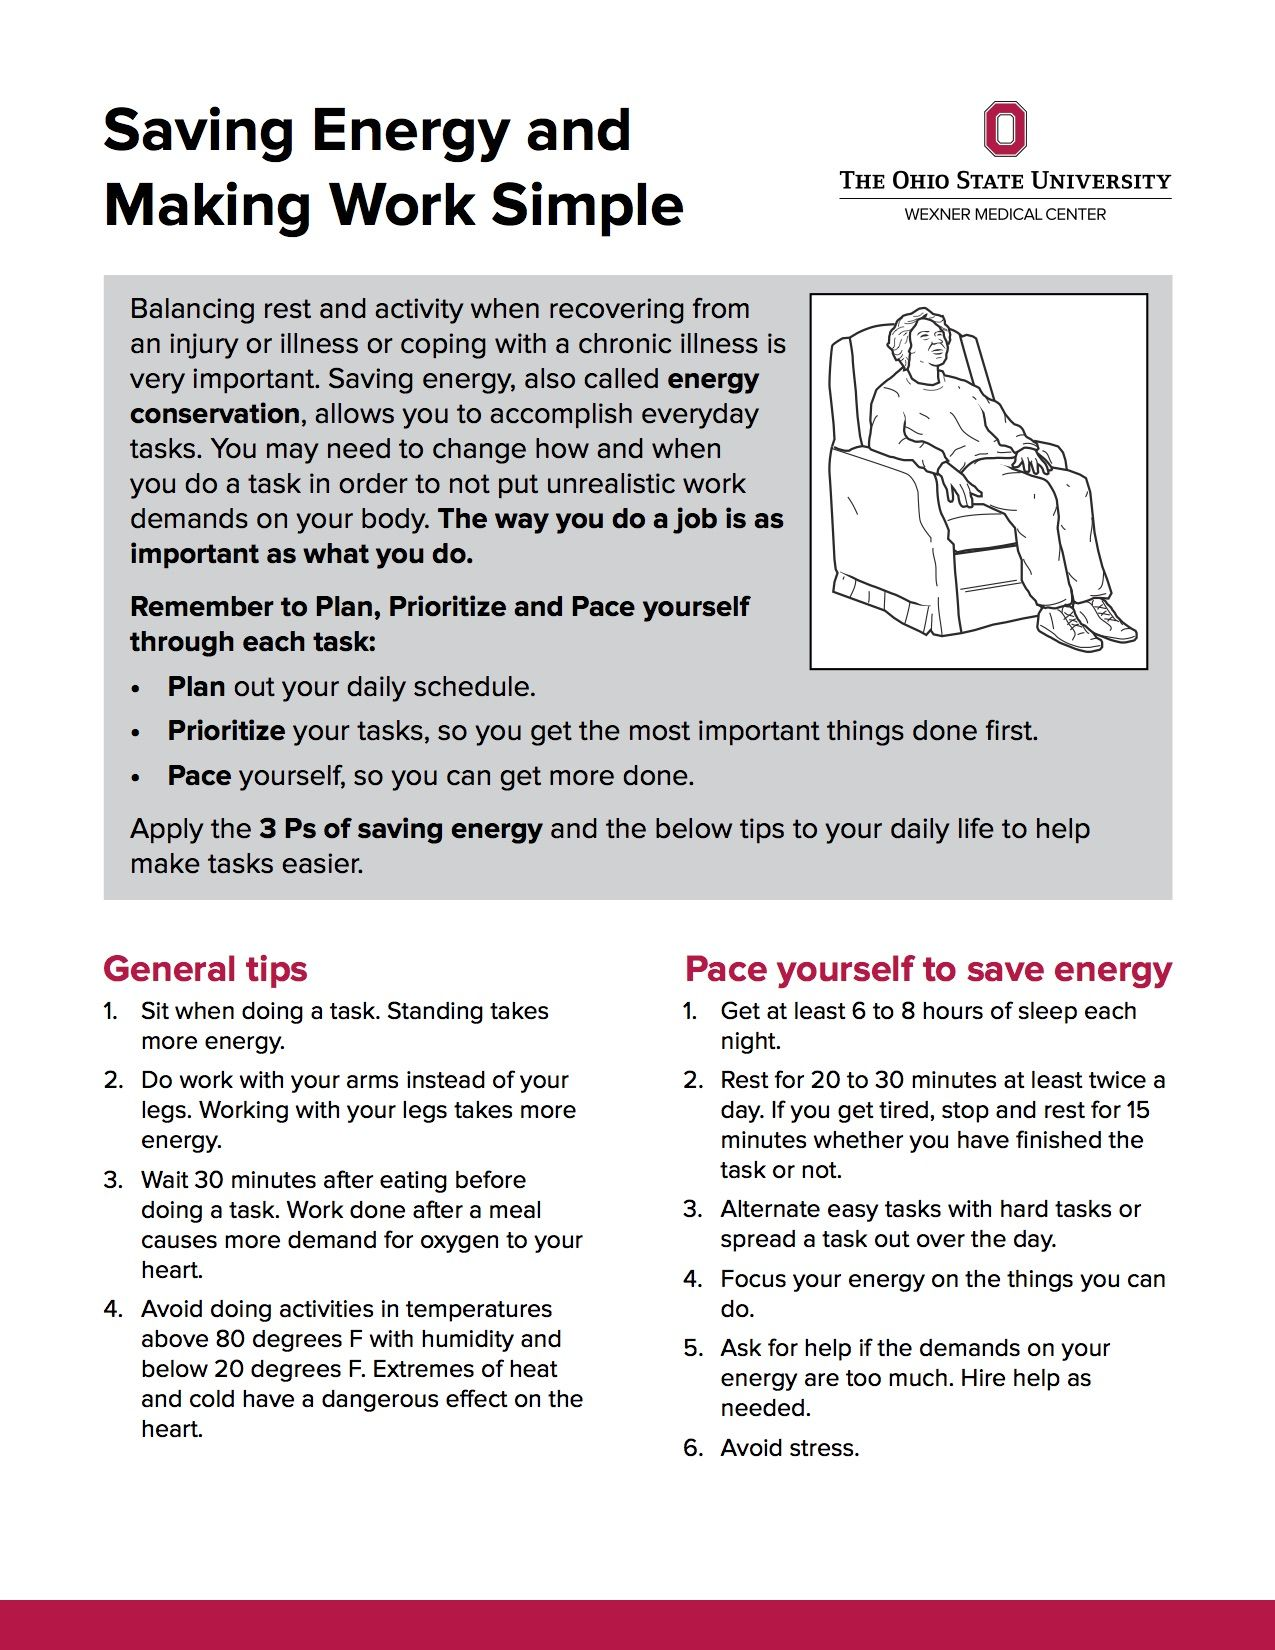 Saving Energy And Making Work Simple From Osu Wexner